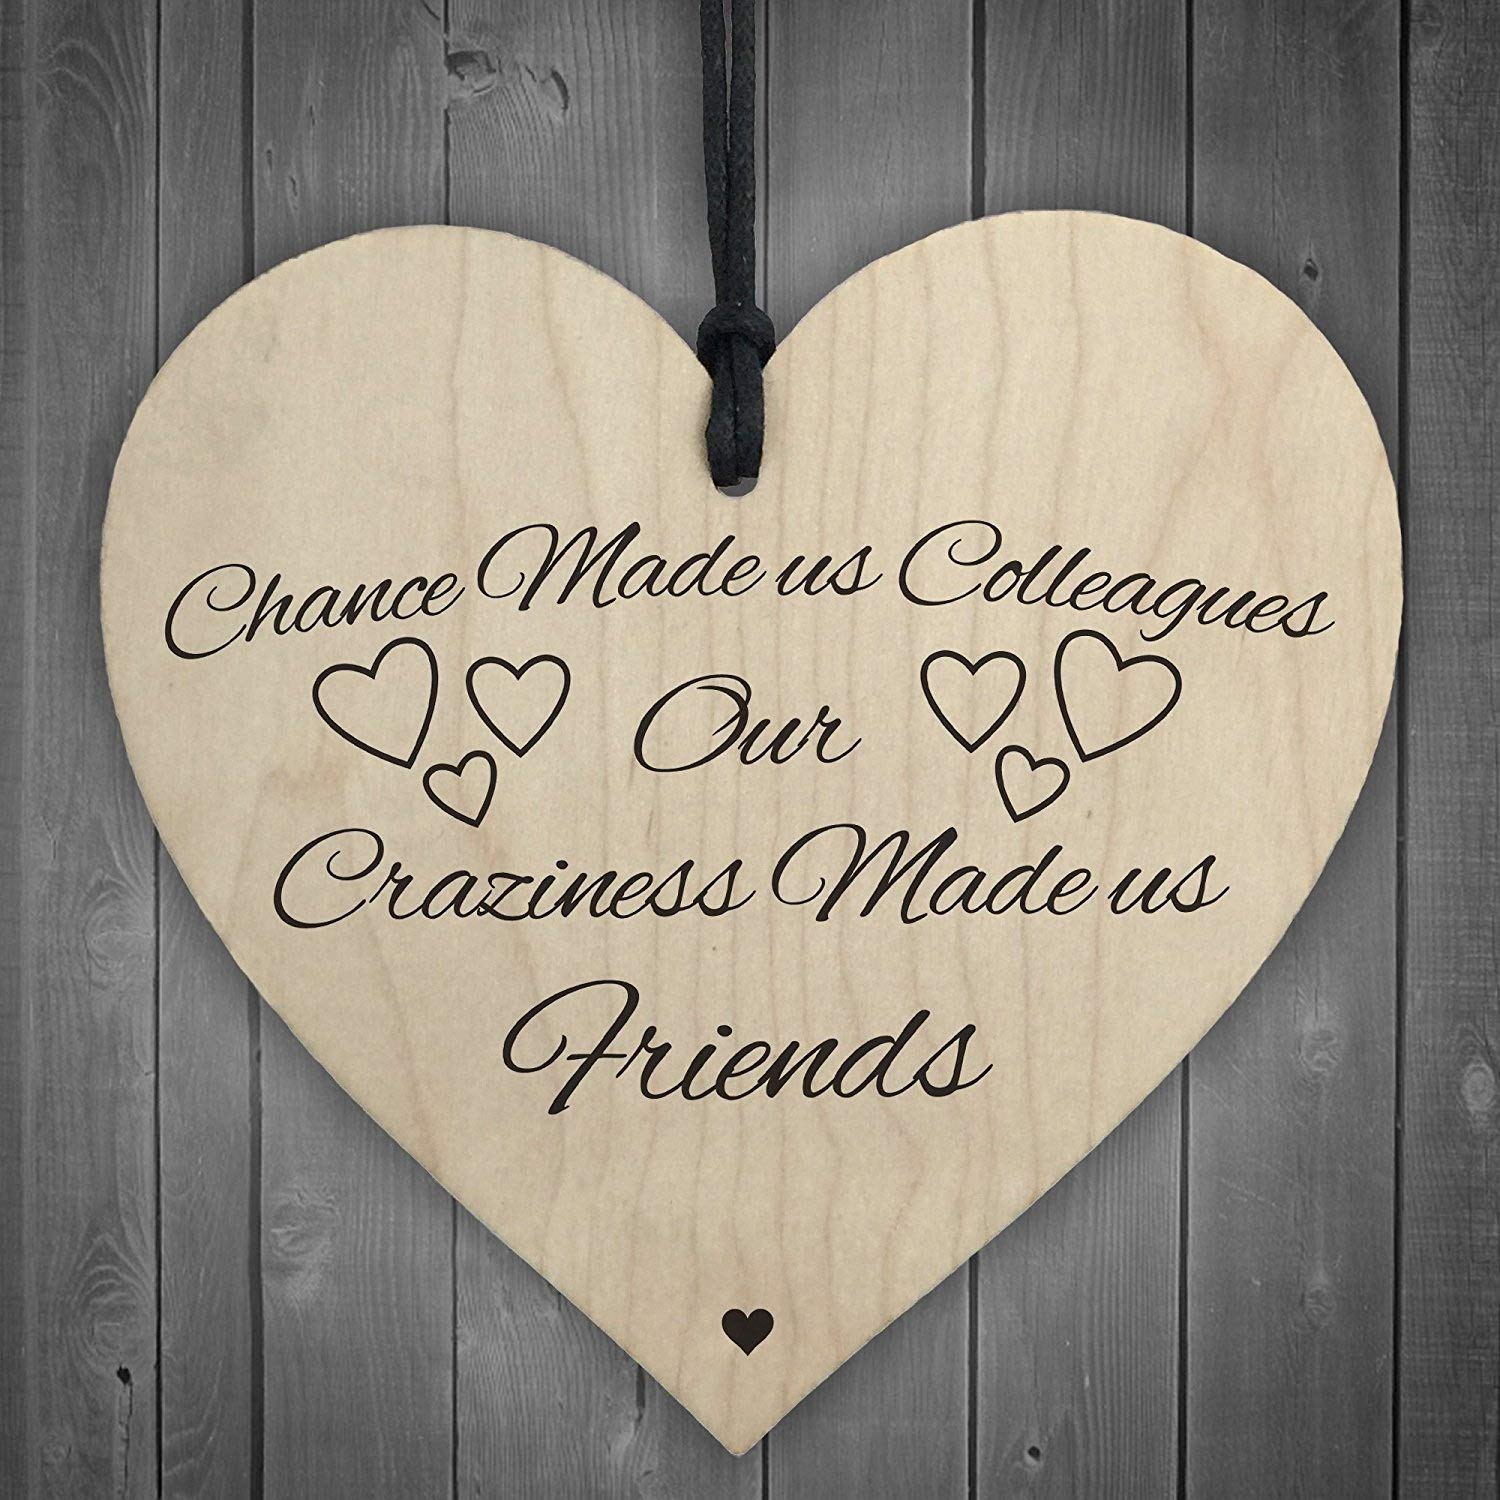 Red Ocean Chance Made Us Colleagues Novelty Wooden Hanging Heart Plaque Friendship Sign RO-2563